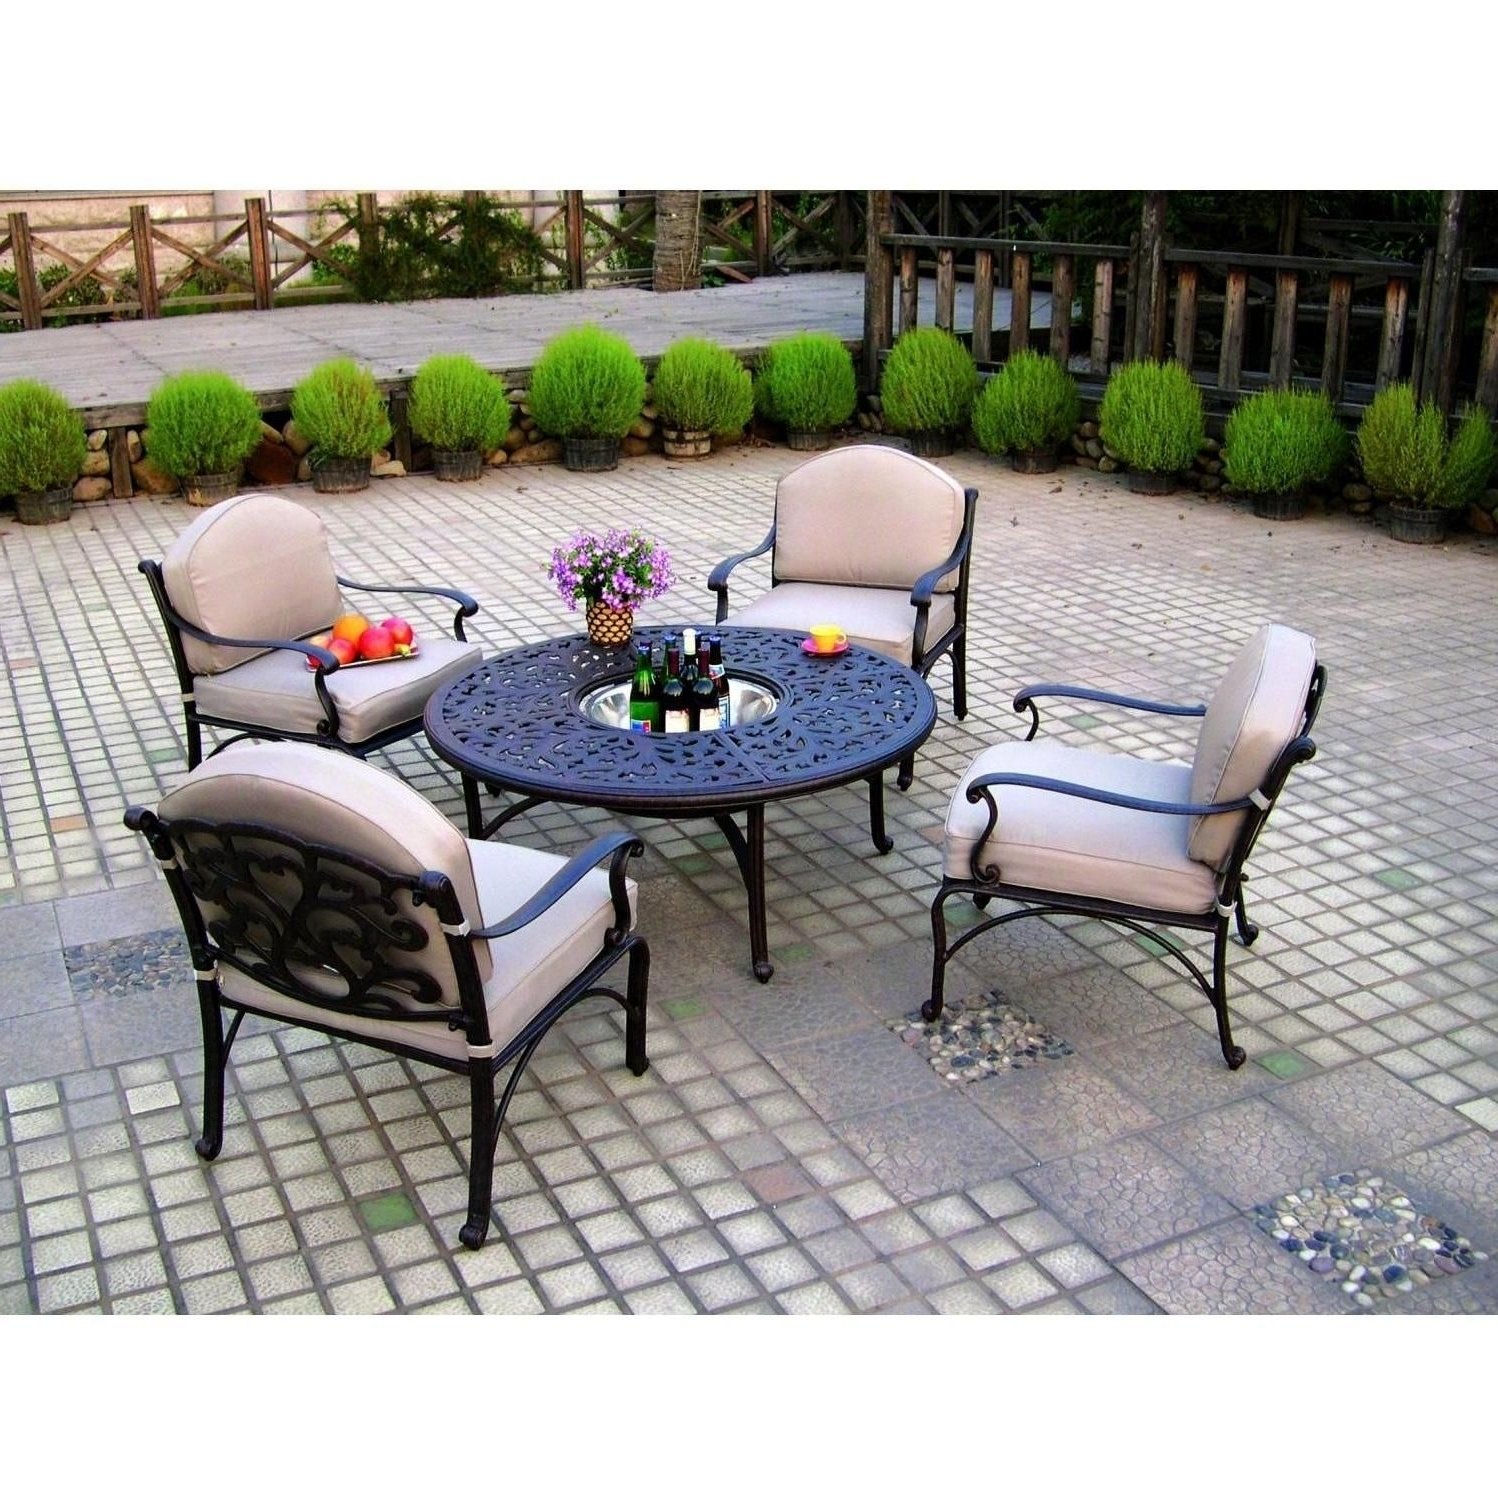 Metal Patio Conversation Sets With Well Known Darlee Catalina 5 Piece Cast Aluminum Patio Conversation Seating Set (View 15 of 20)